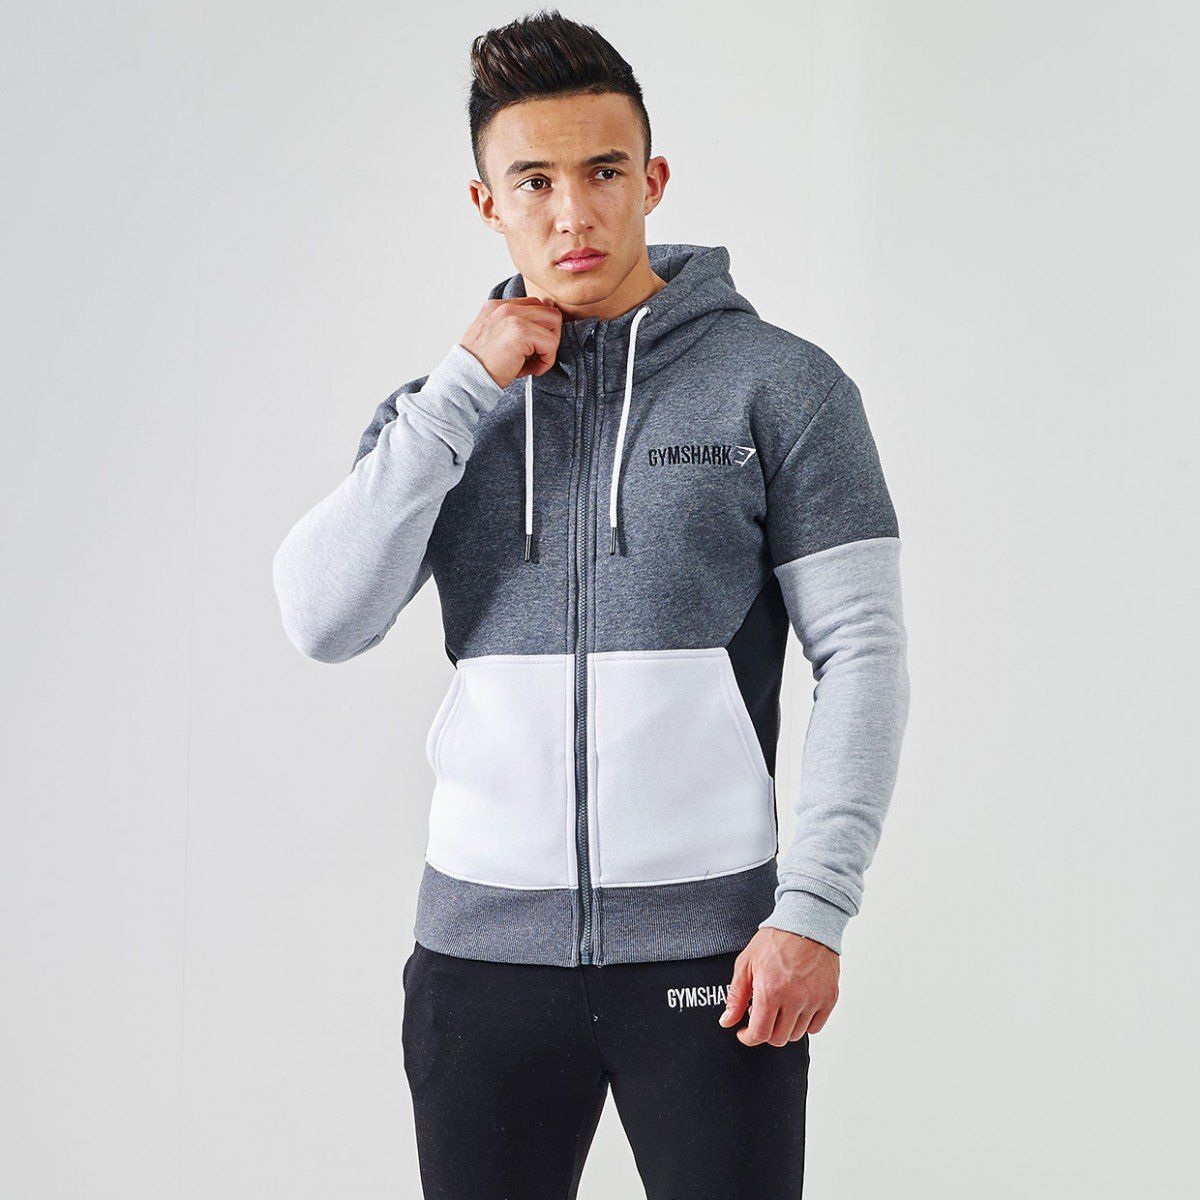 Gymshark Fit Frontier Thermal Hoodie Black Hoodies